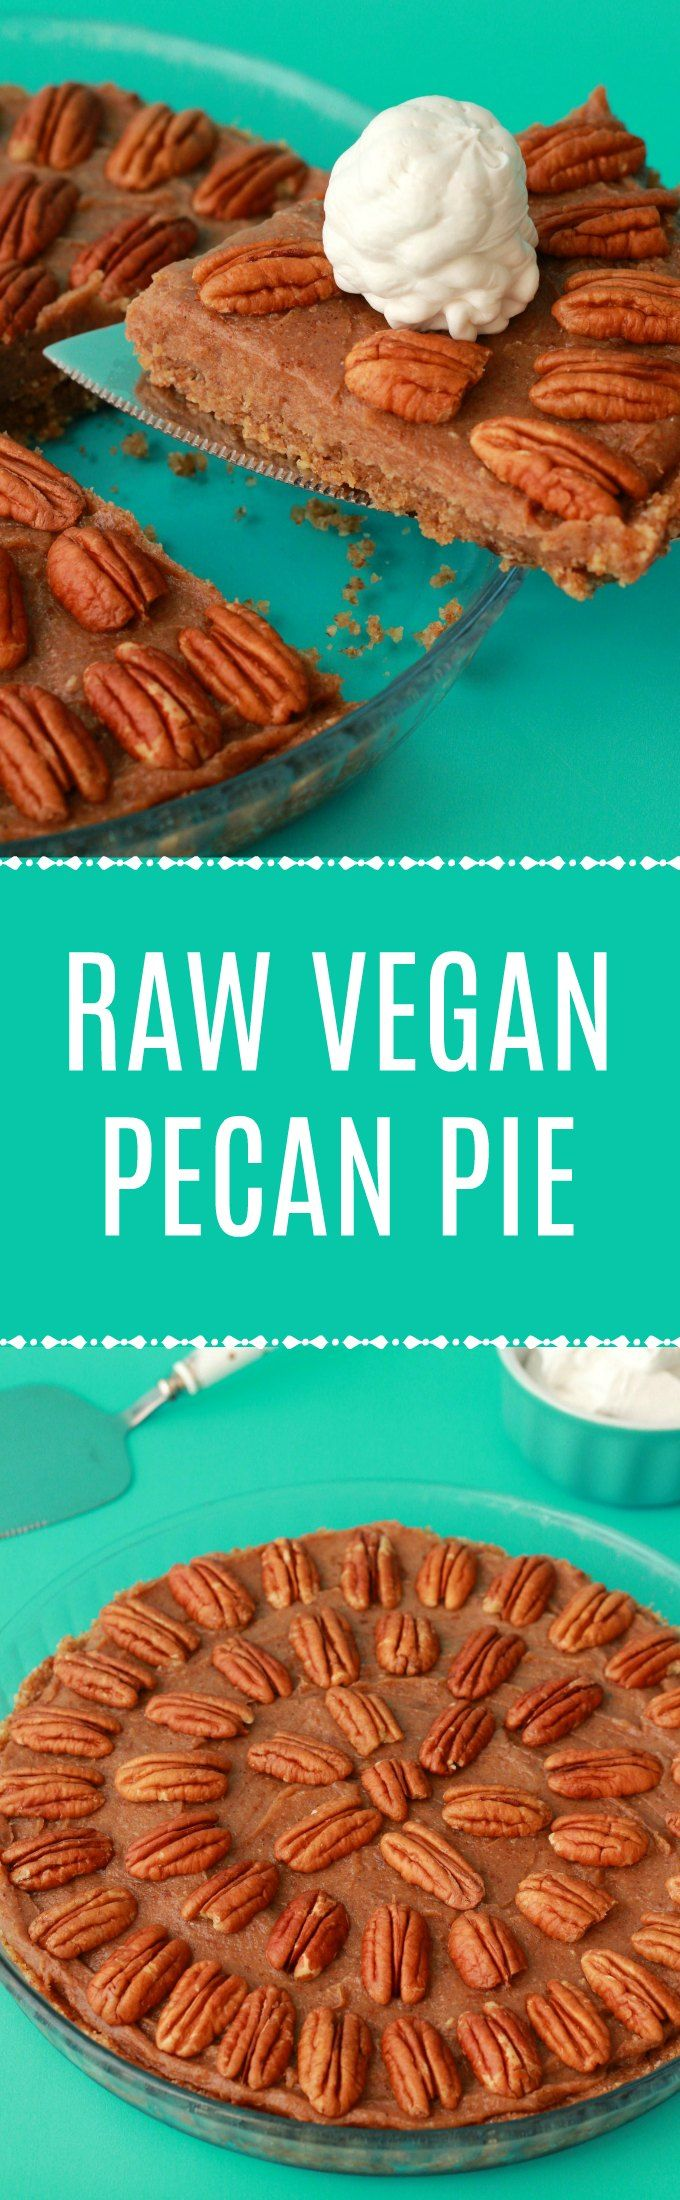 Deliciously raw vegan pecan pie. 3-layers of raw goodness, packed with pecans and pecan flavor, super easy, and divine served with vegan whipped cream! | lovingitvegan.com